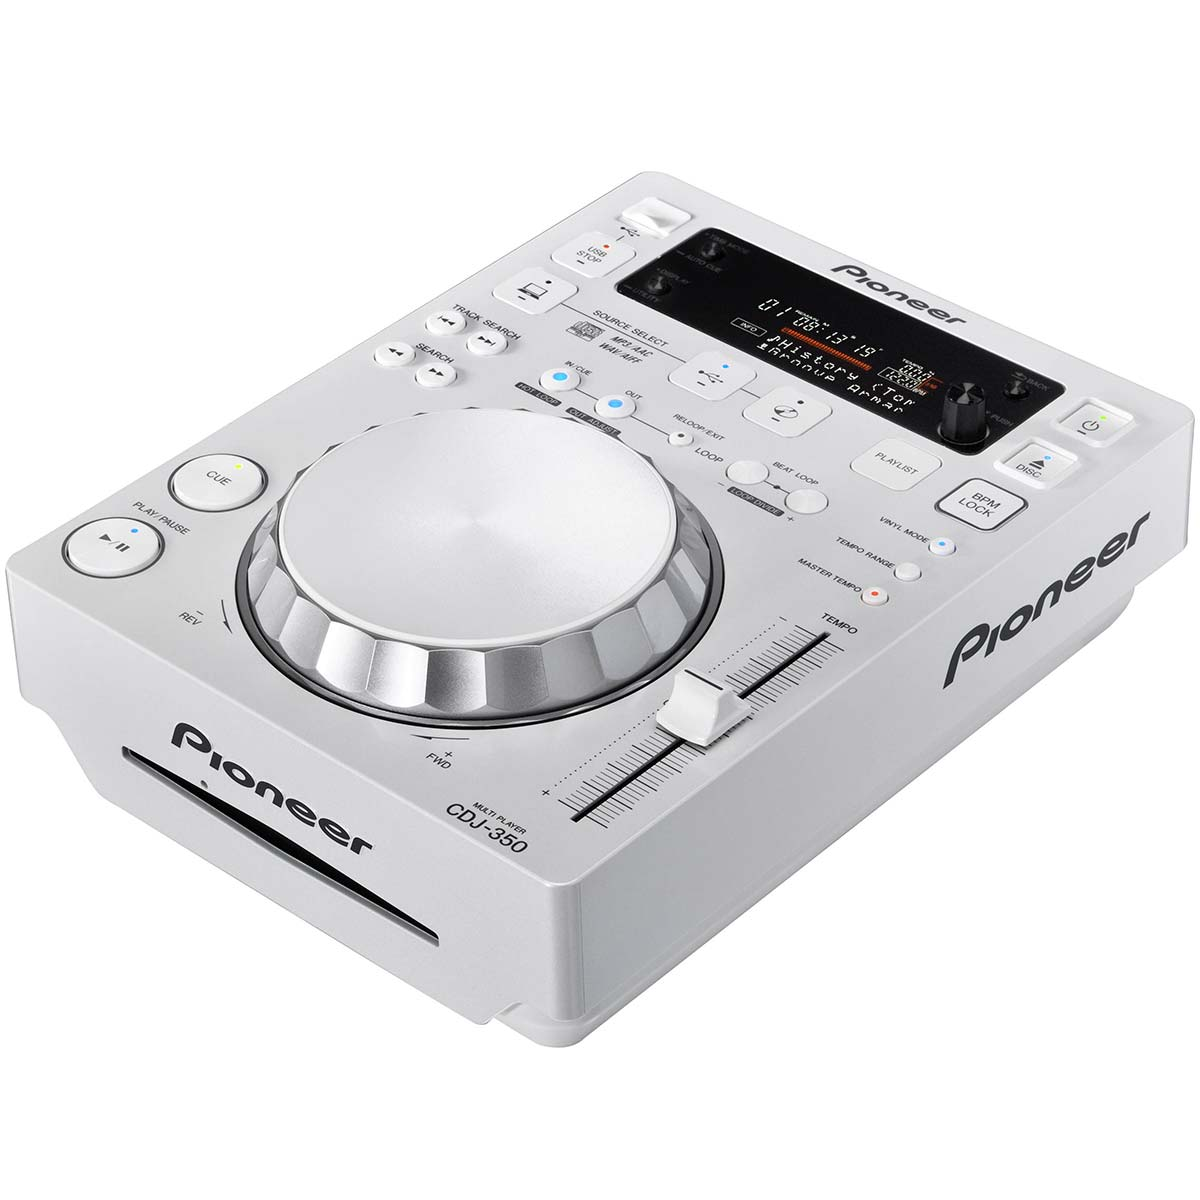 CDJ350 - CDJ Player c/ USB CDJ 350 Branco - Pioneer